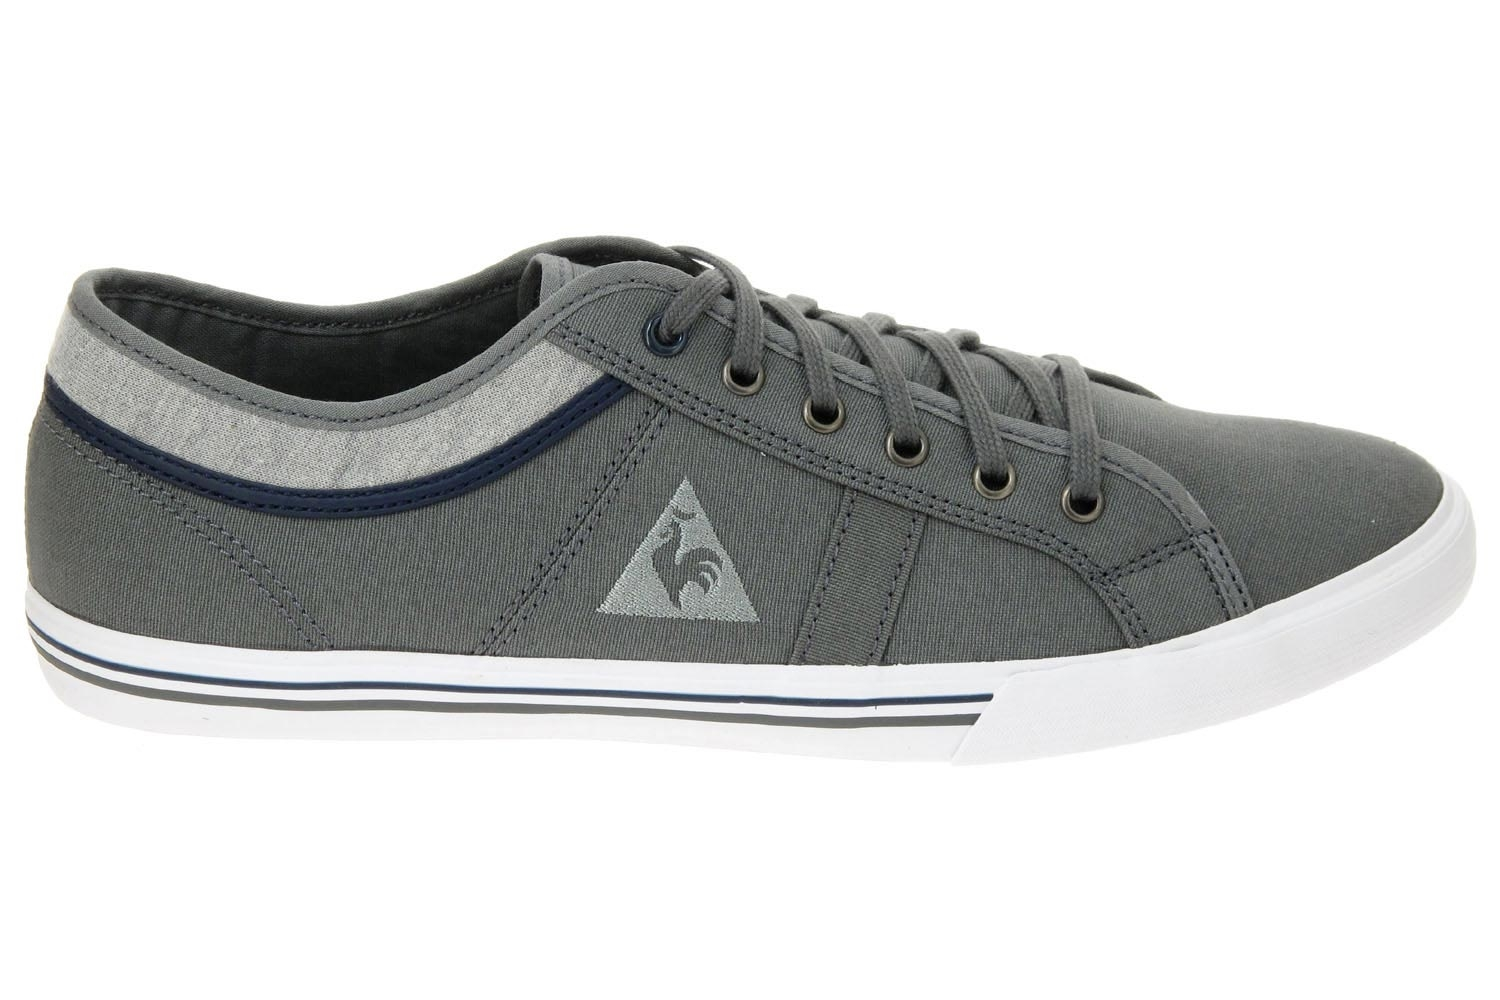 chaussure coq sportif homme 2014 images. Black Bedroom Furniture Sets. Home Design Ideas